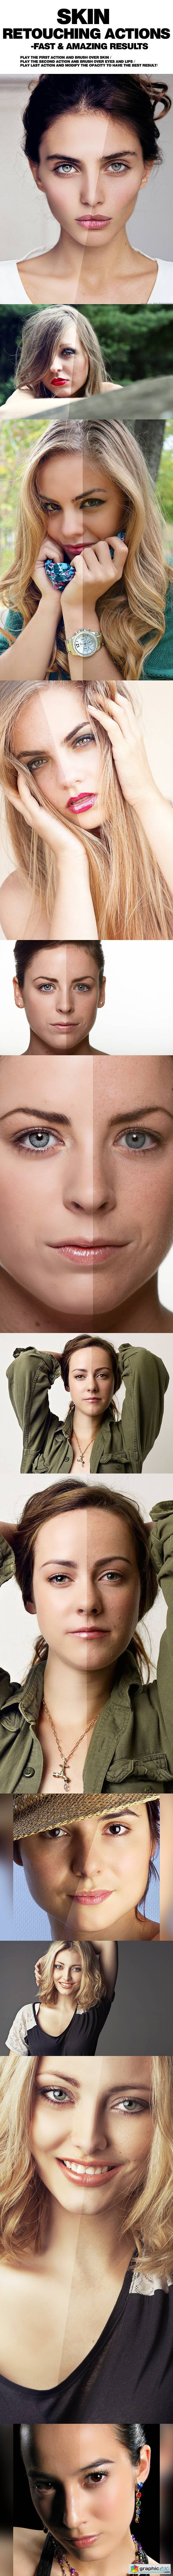 PRO Skin Retouching Actions